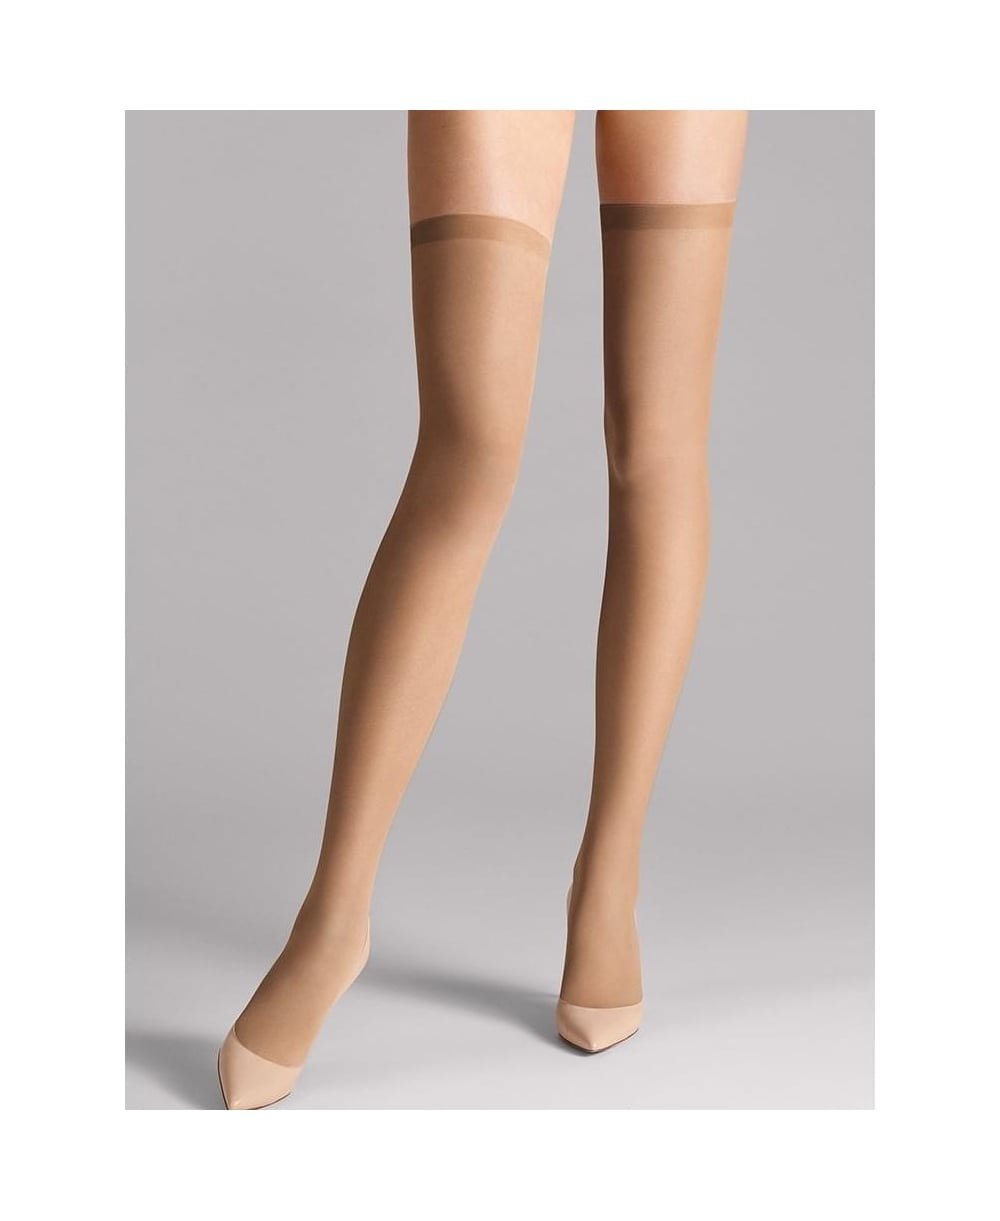 cada79c9bae Wolford Fatal 15 Seamless Stay-Ups - Hold-Ups from luxury-legs.com UK